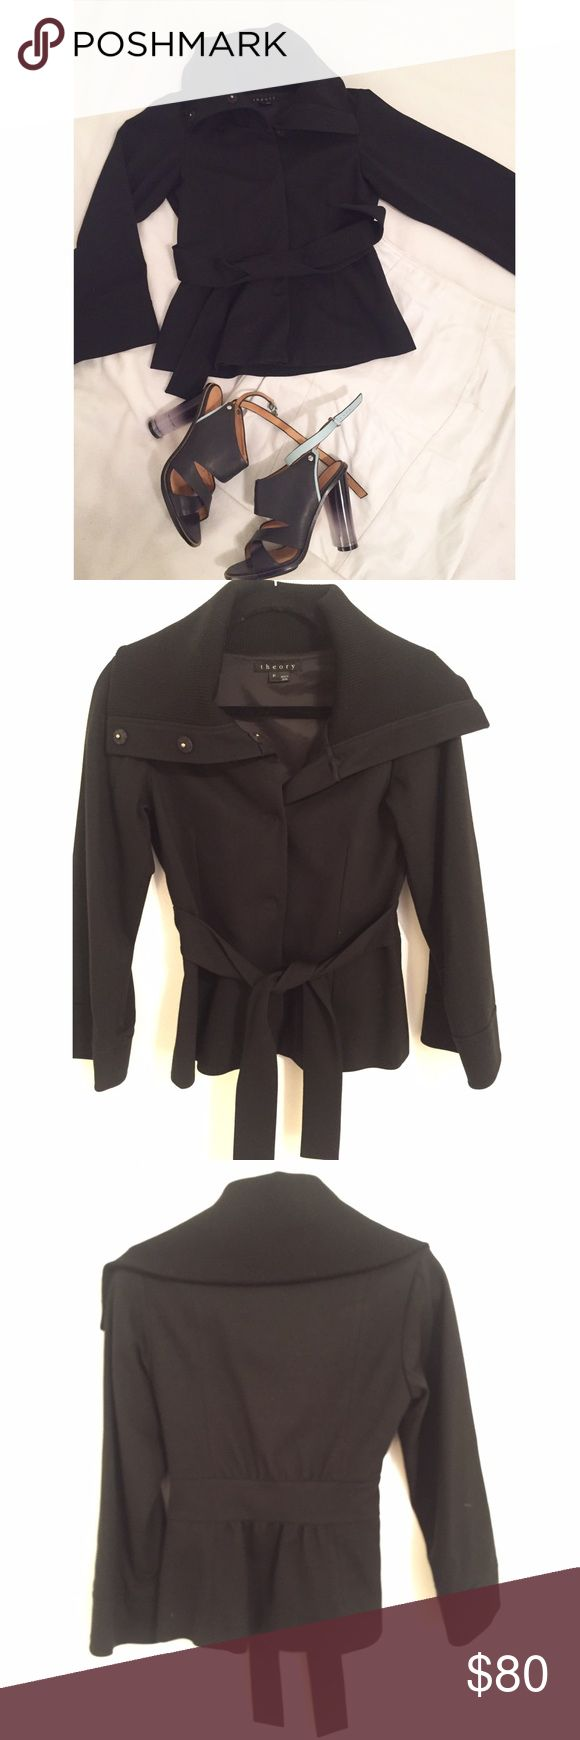 Theory black jacket with a belt Theory kimono style jacket with large collar. Perfect condition. Size only says P. I'm a size 4-6 and it fits me well. Theory Jackets & Coats